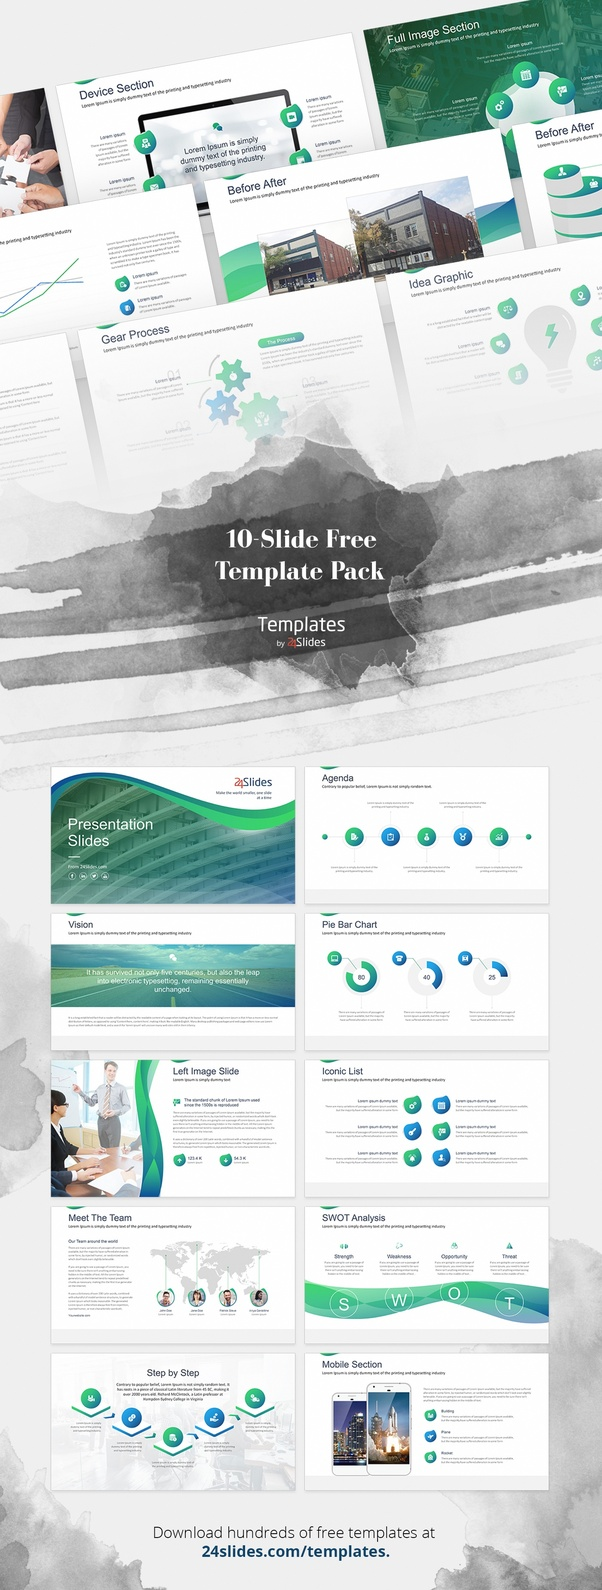 How to make powerpoint slides look elegant and designy quora leave it to the design of this template to give a professional and a well structured presentation of your brand it is also completed with charts map toneelgroepblik Choice Image